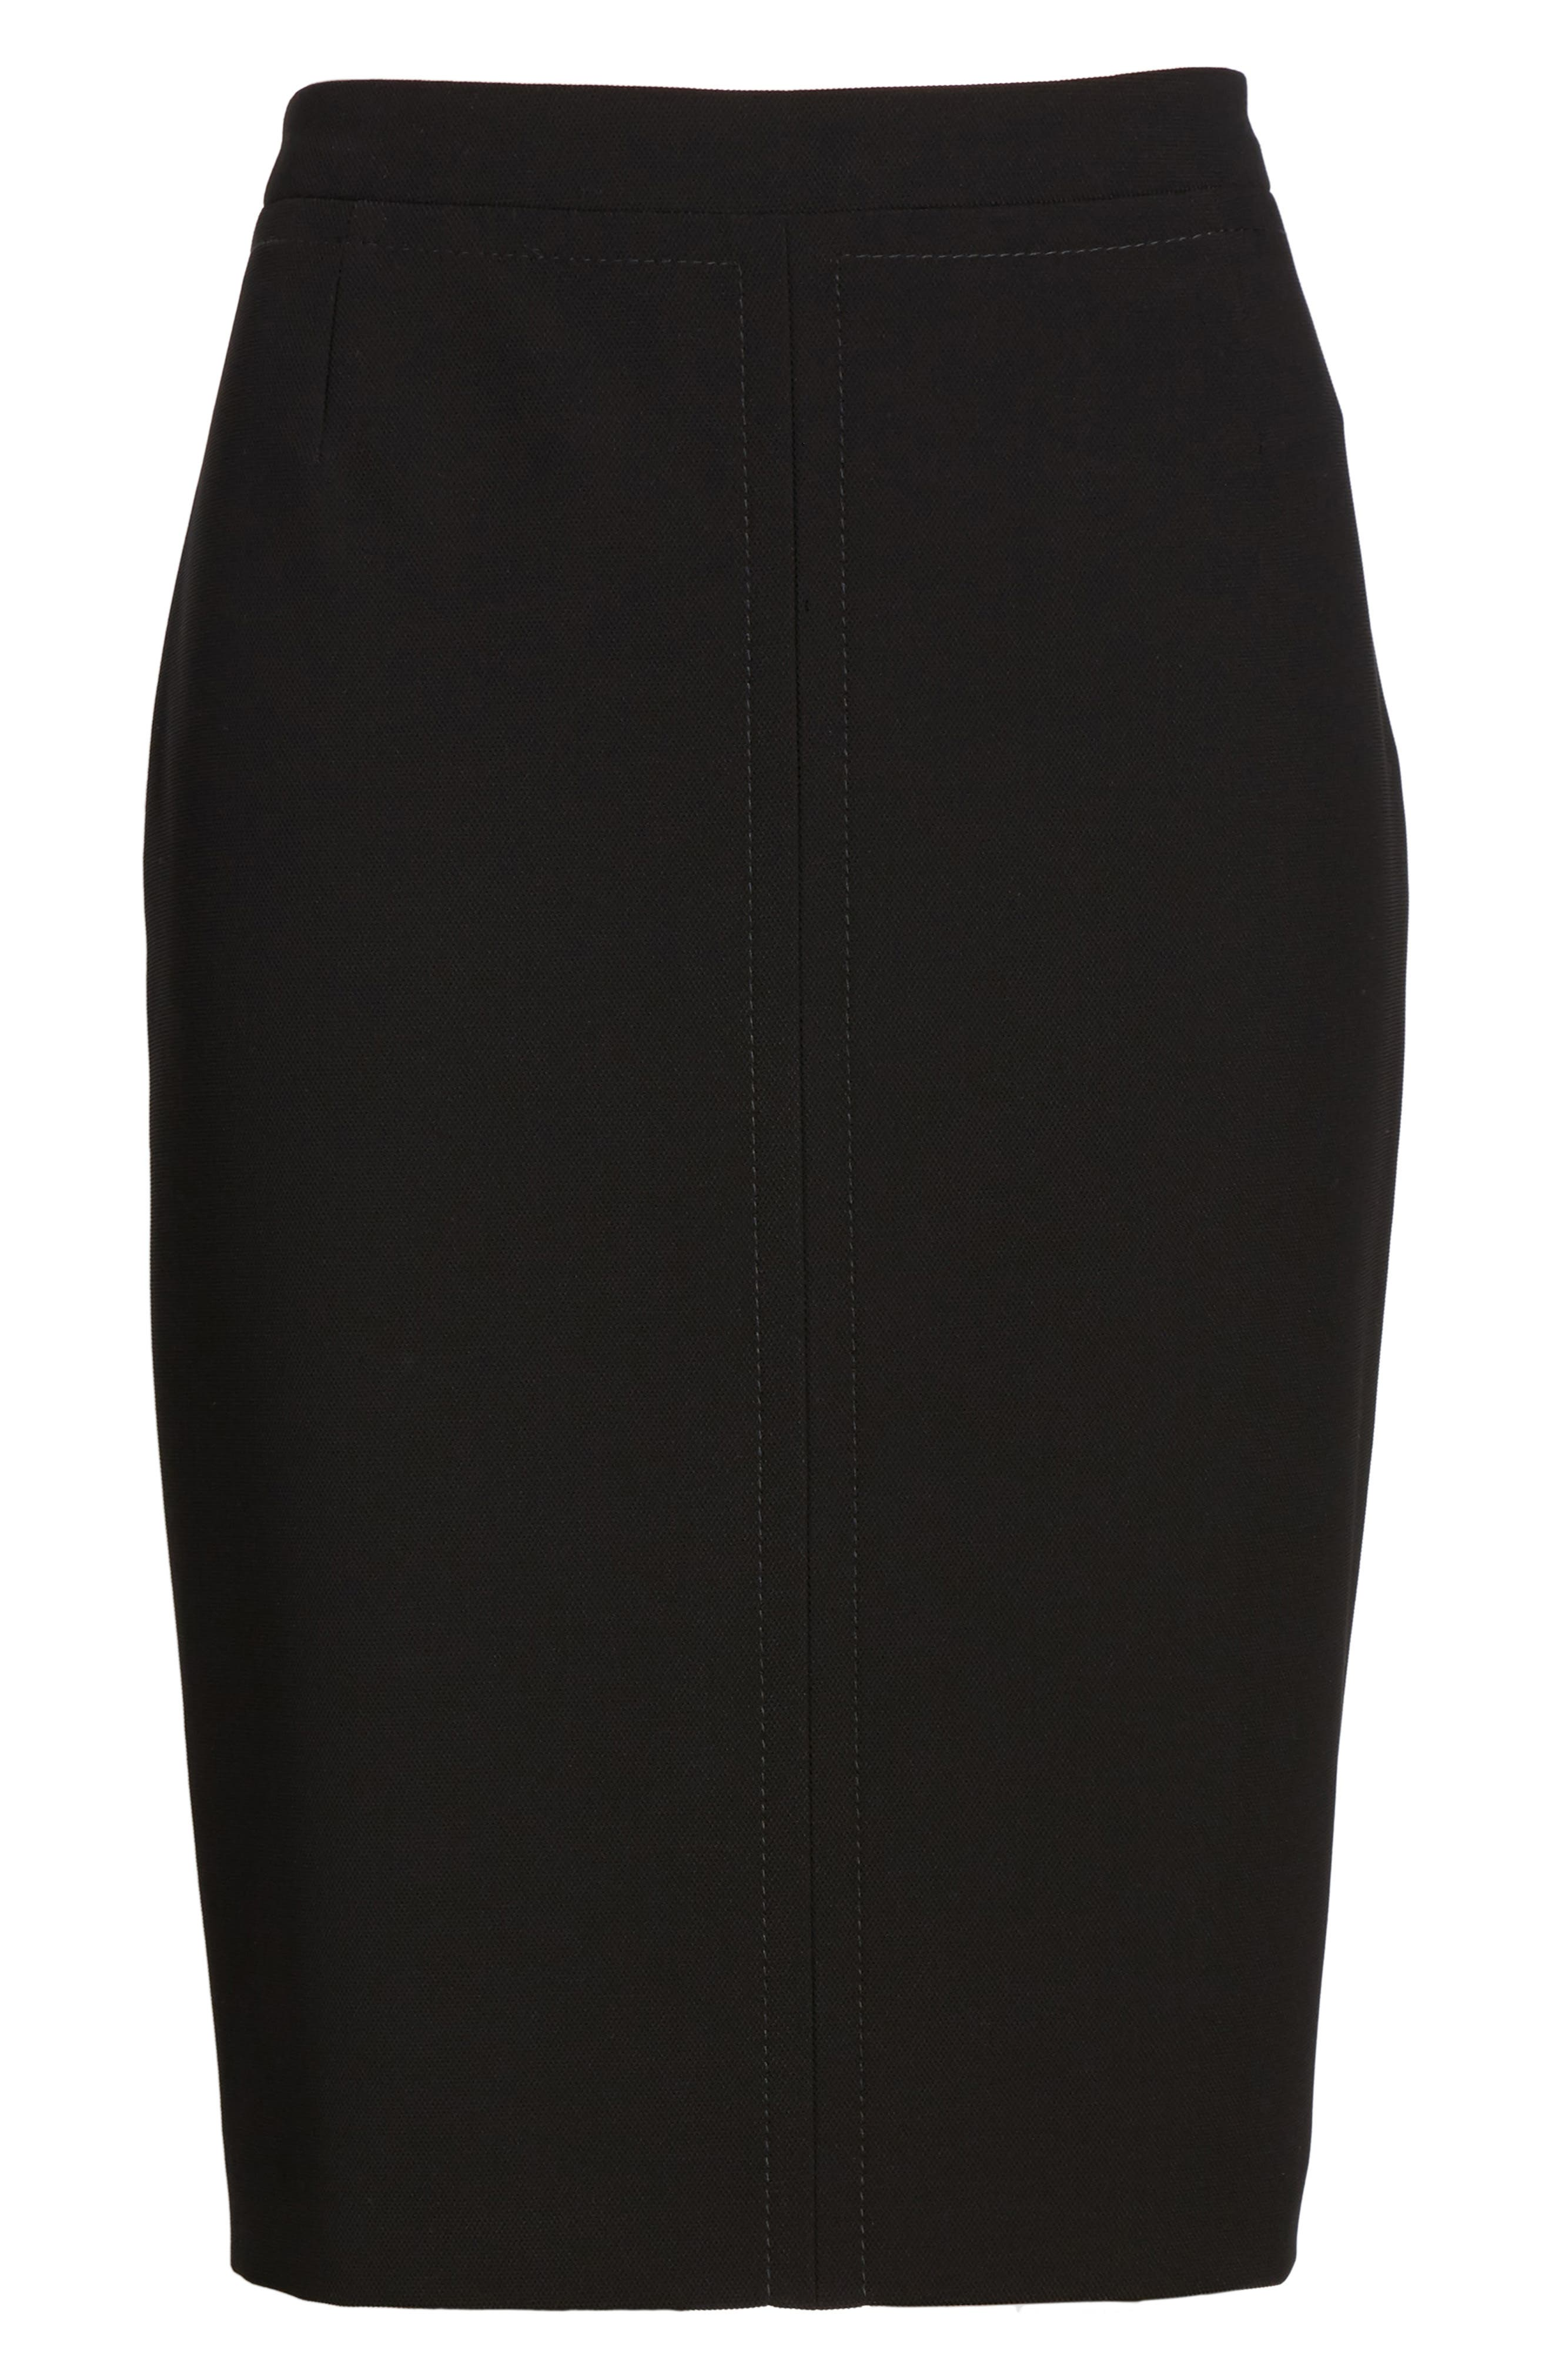 Vuriona Pencil Skirt,                             Alternate thumbnail 6, color,                             Black